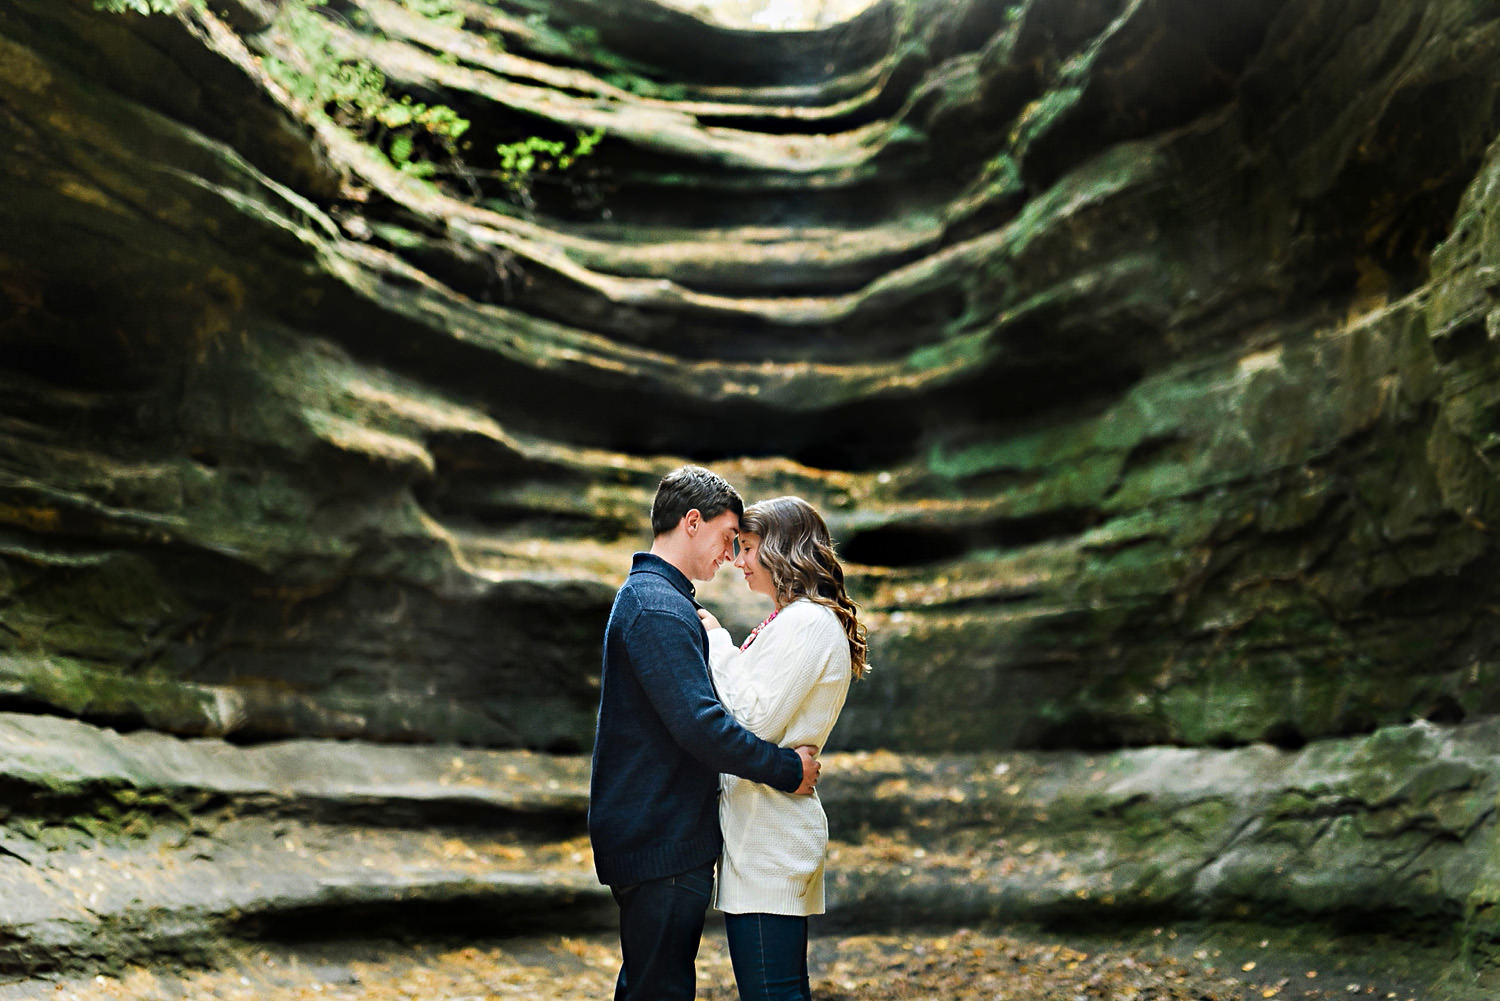 A couple poses candidly for an engagement photo at Starved Rock State Park.